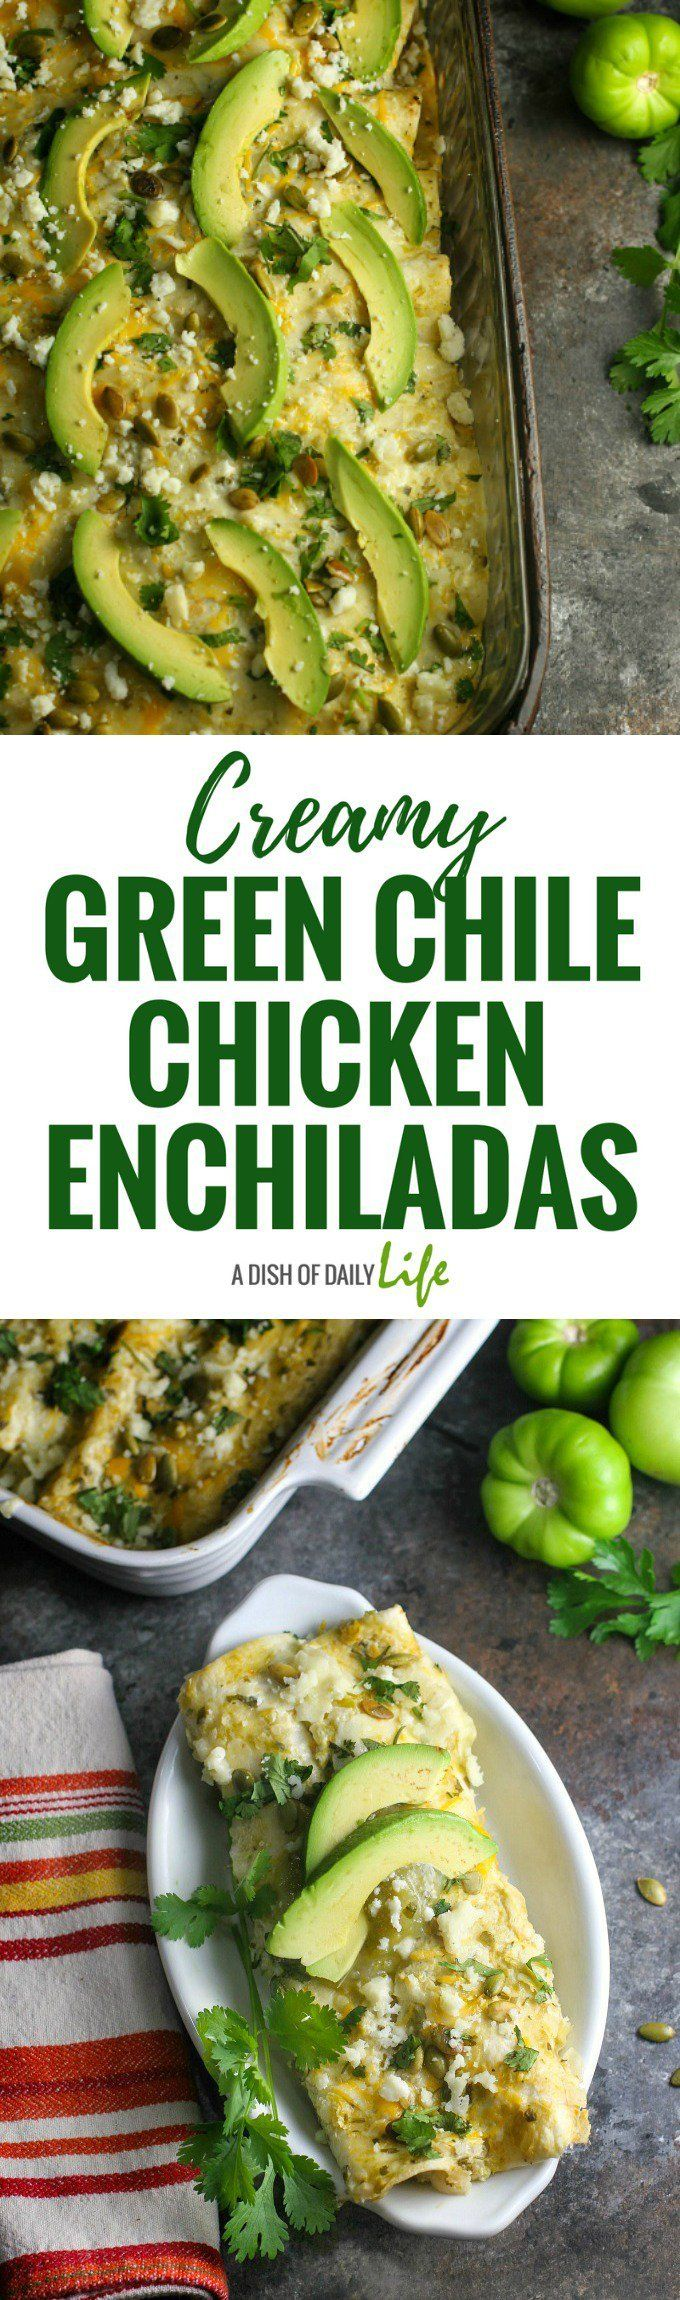 Greek yogurt gives these yummy Creamy Green Chile Chicken Enchiladas a health boost!  Mexican |  Chicken | Main Dishes | Green Chile Sauce | Green Chile Enchilada Sauce | Tex-Mex | Southwestern recipes | Greek yogurt #ad #TeamDairyNE